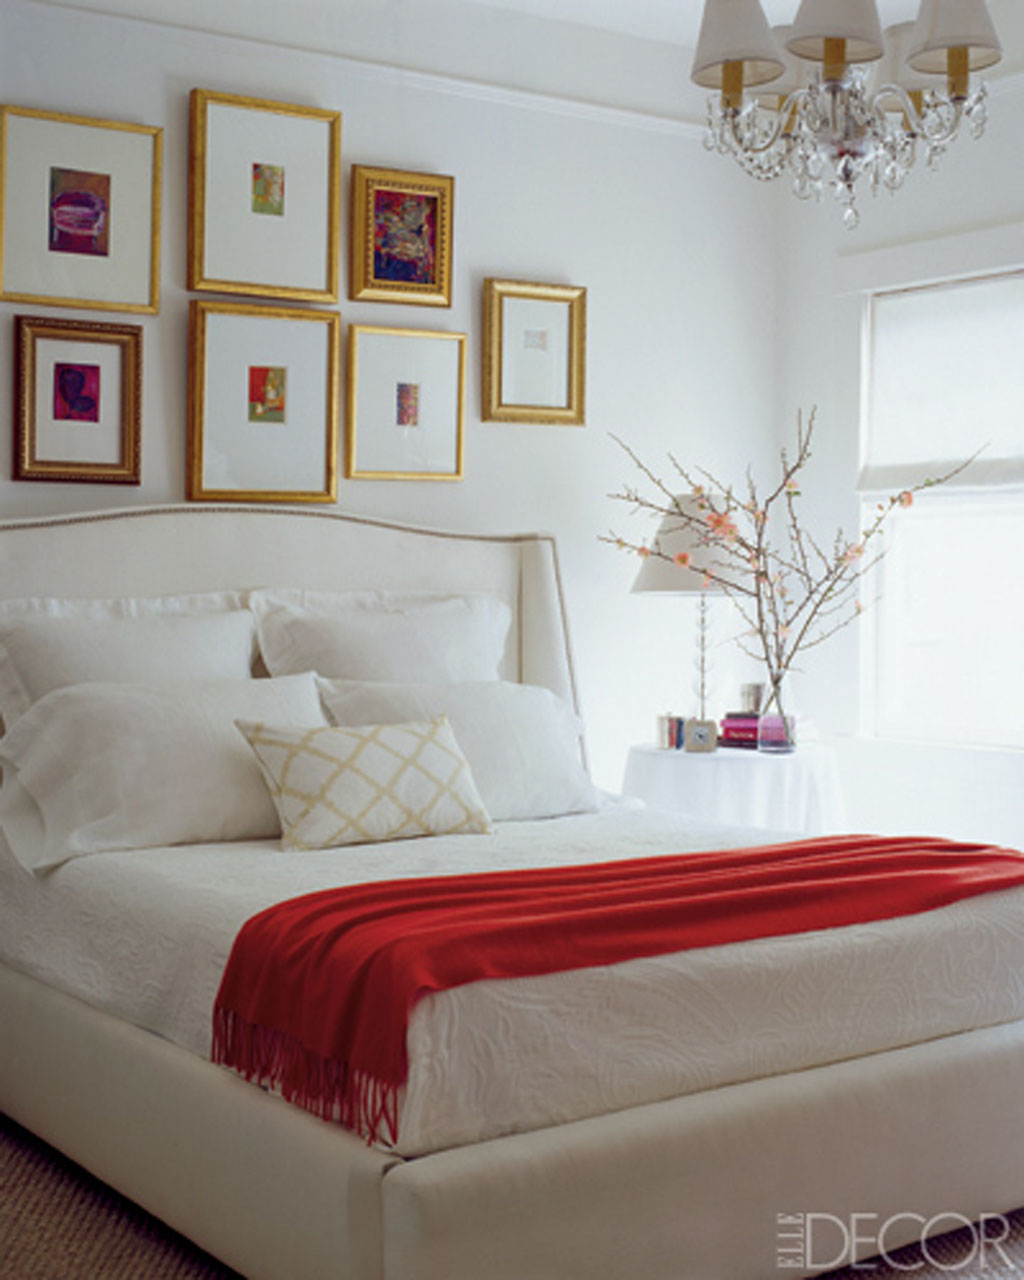 Black And White And Red Bedroom Ideas Part - 16: Black White And Red Bedroom Ideas